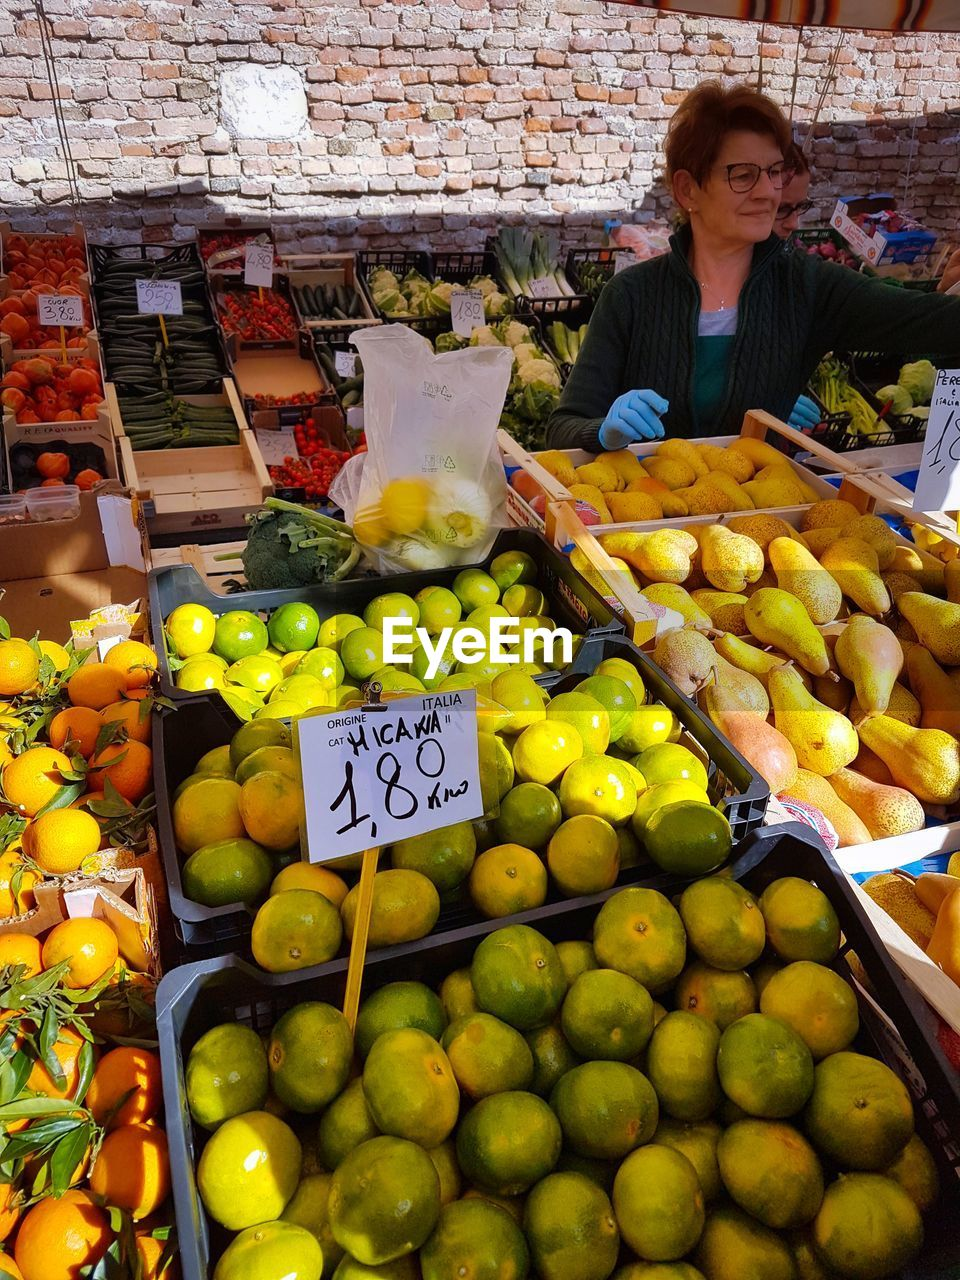 fruit, retail, market, market stall, orange - fruit, healthy eating, for sale, food and drink, freshness, choice, food, large group of objects, small business, variation, abundance, outdoors, citrus fruit, day, one person, business, occupation, price tag, real people, supermarket, people